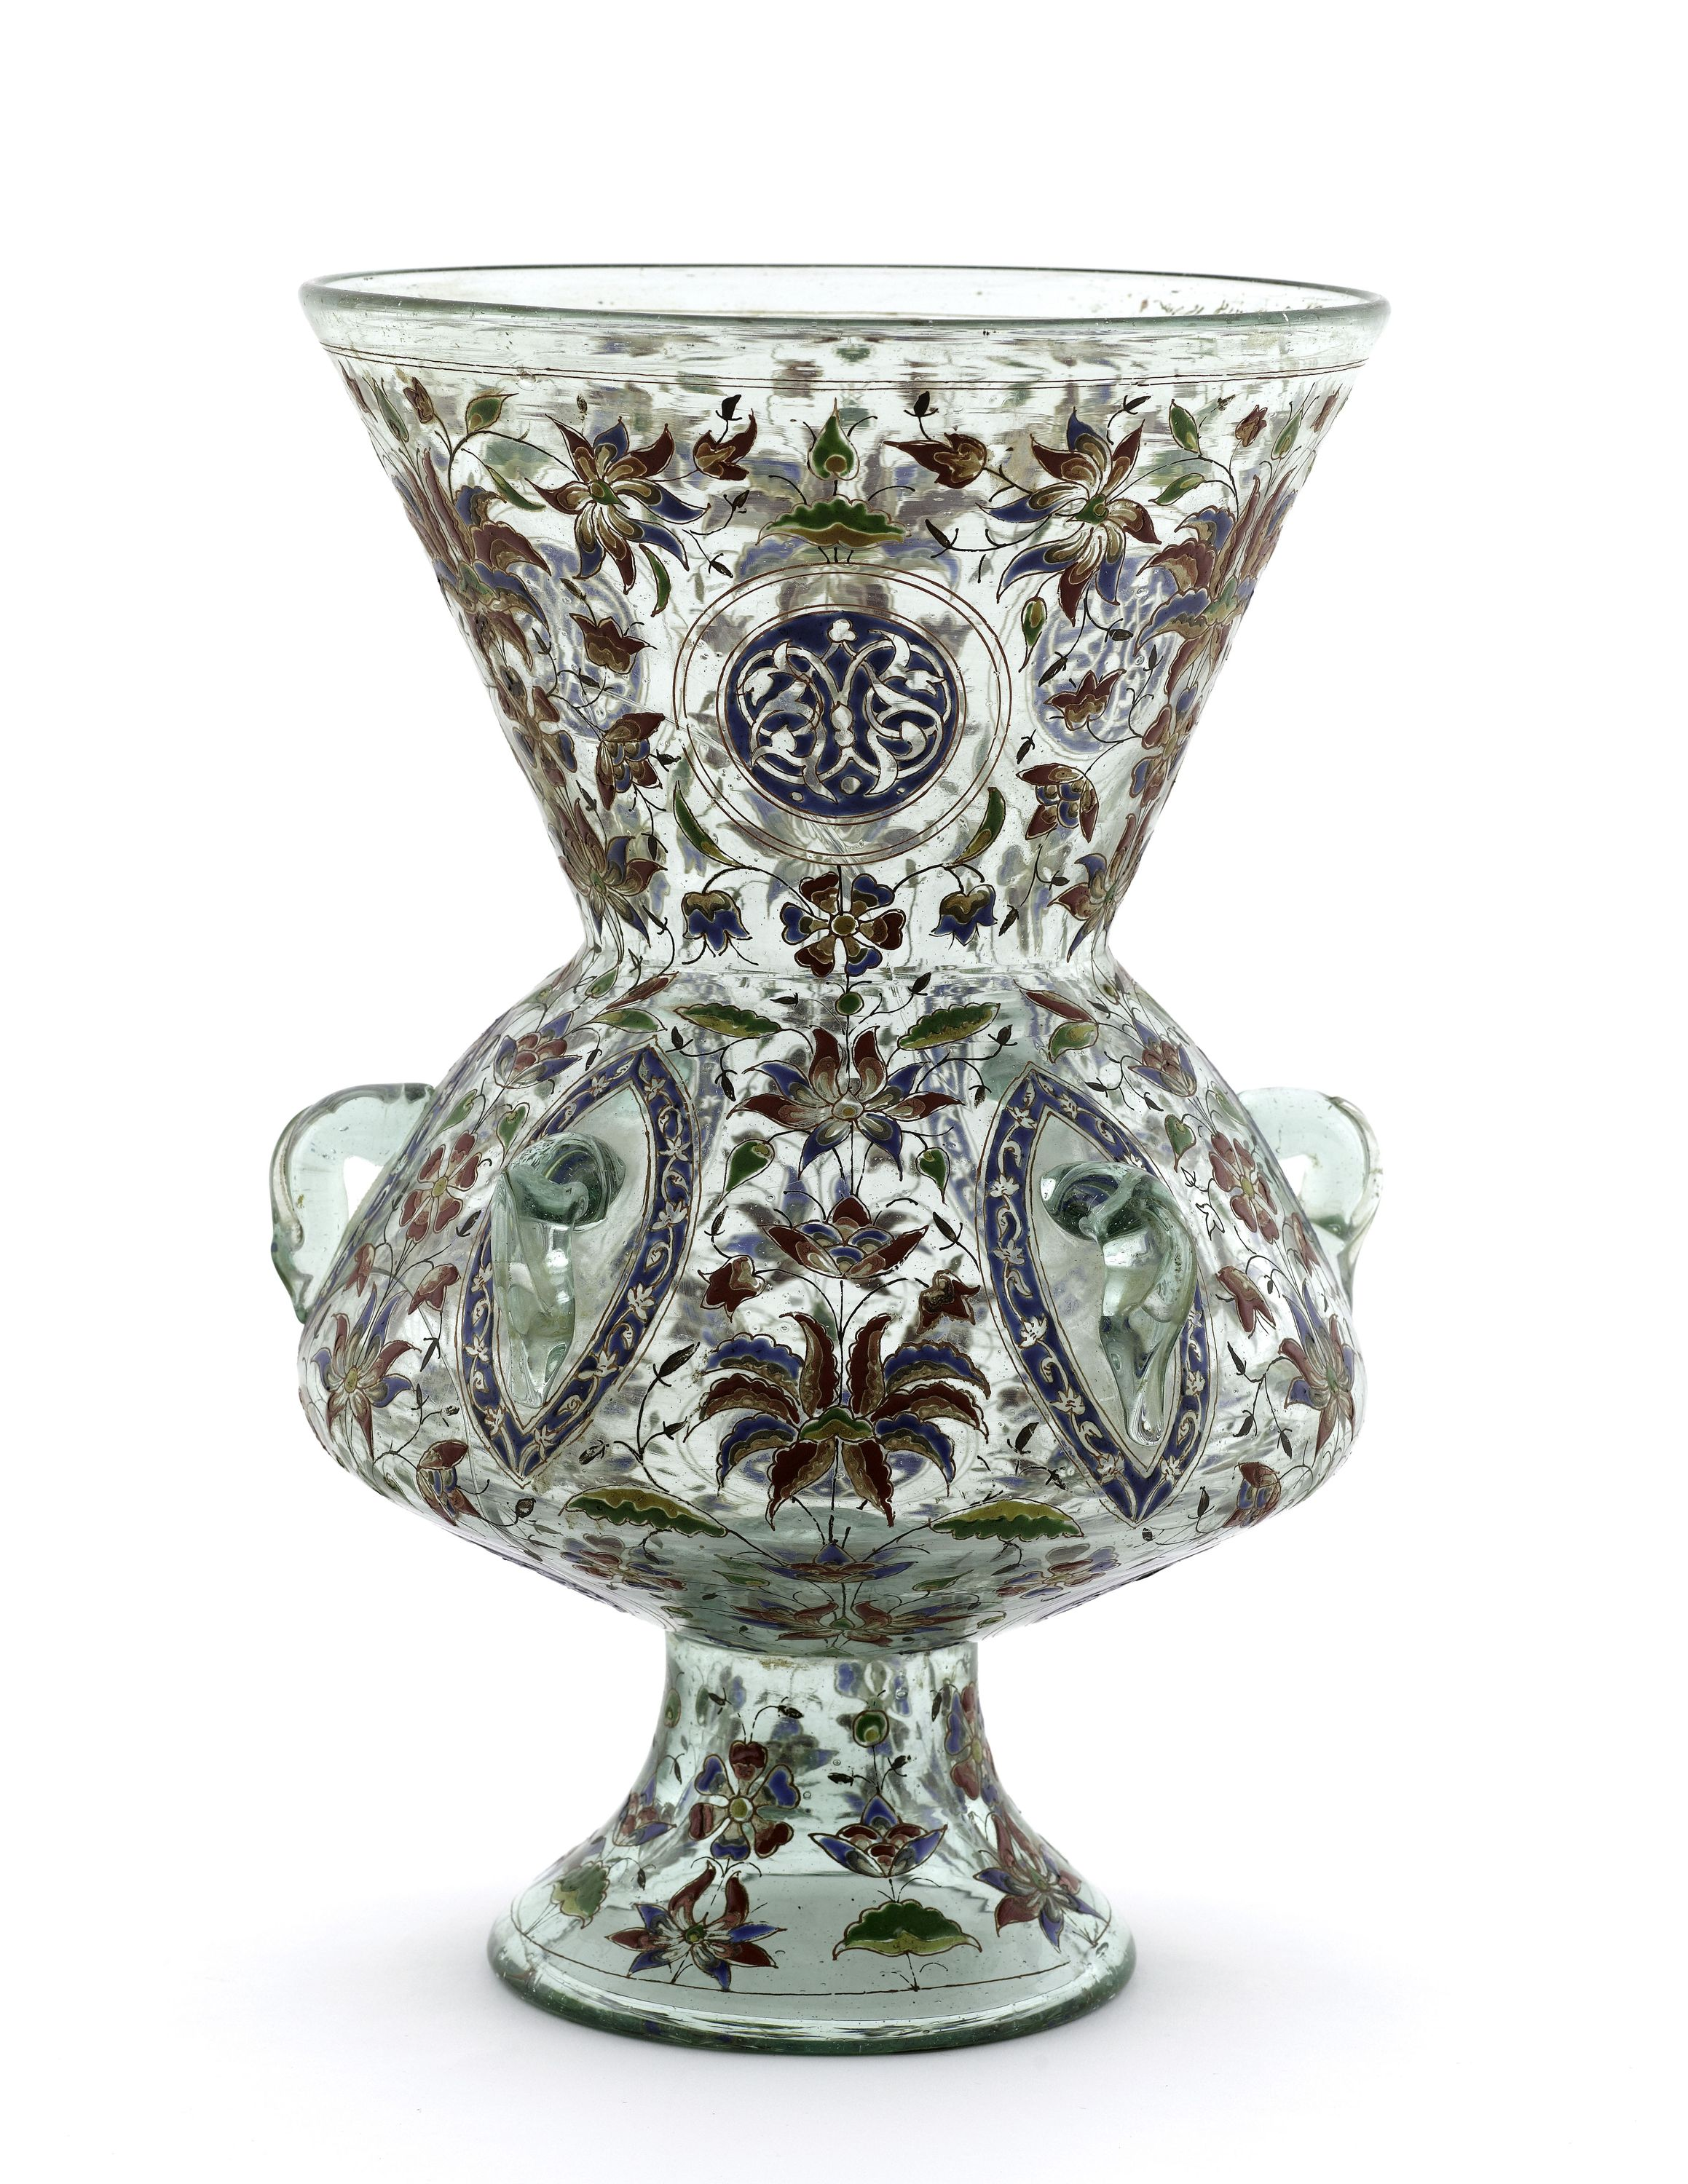 Philippe-Joseph Brocard - Mosque lamp